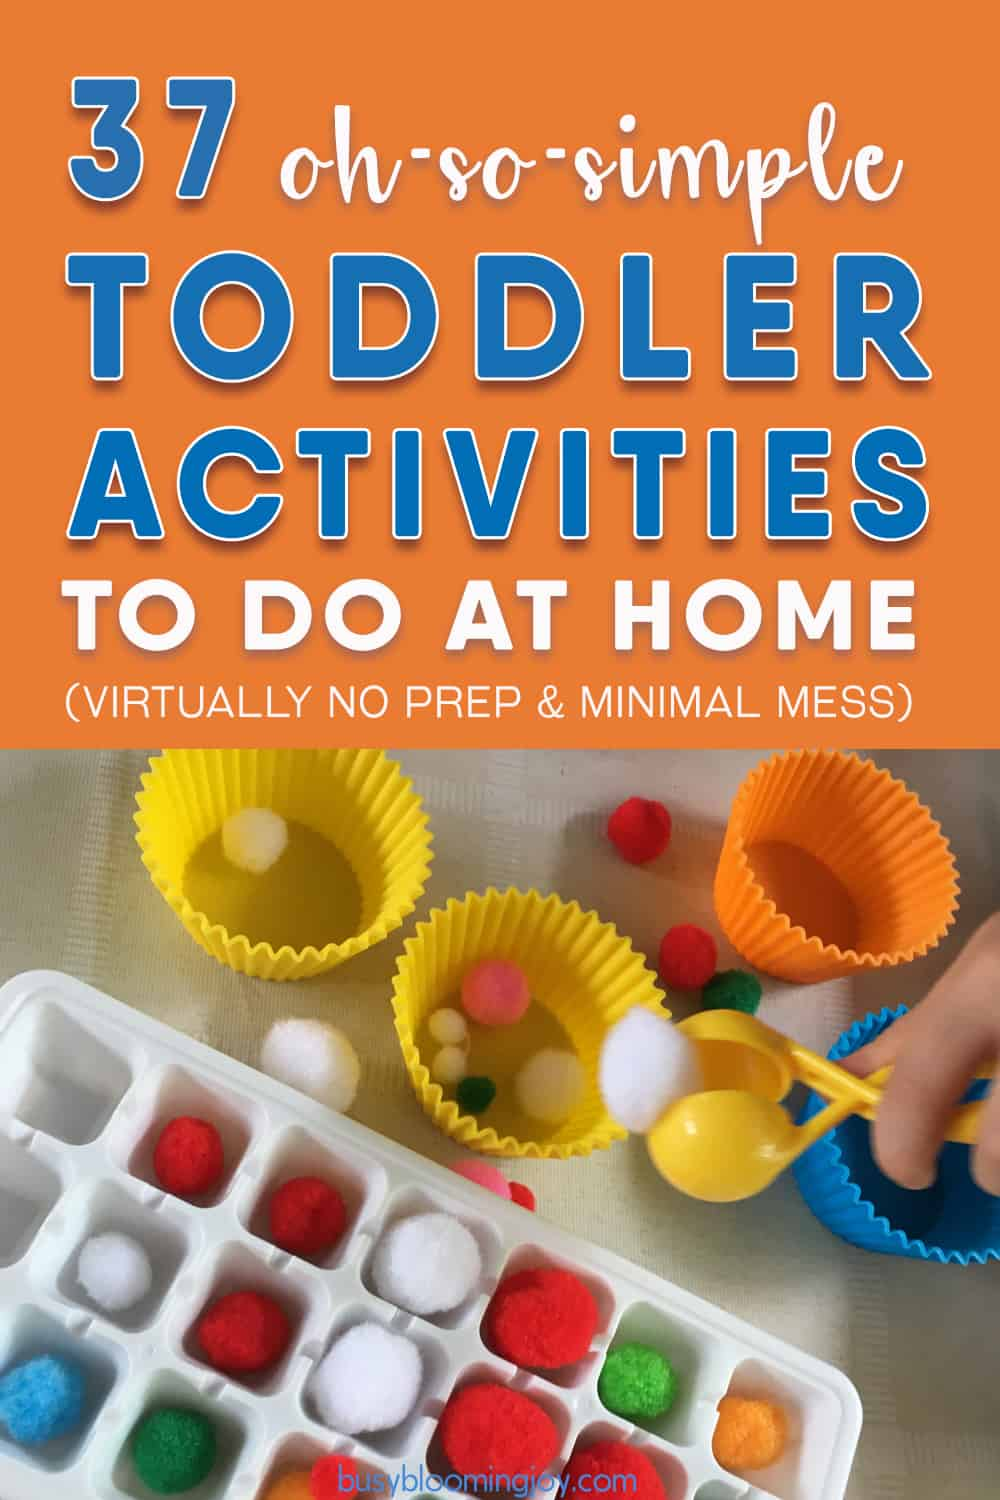 39 simple & sanity-saving activities for toddlers & preschoolers to do at home (minimal prep, minimal mess)